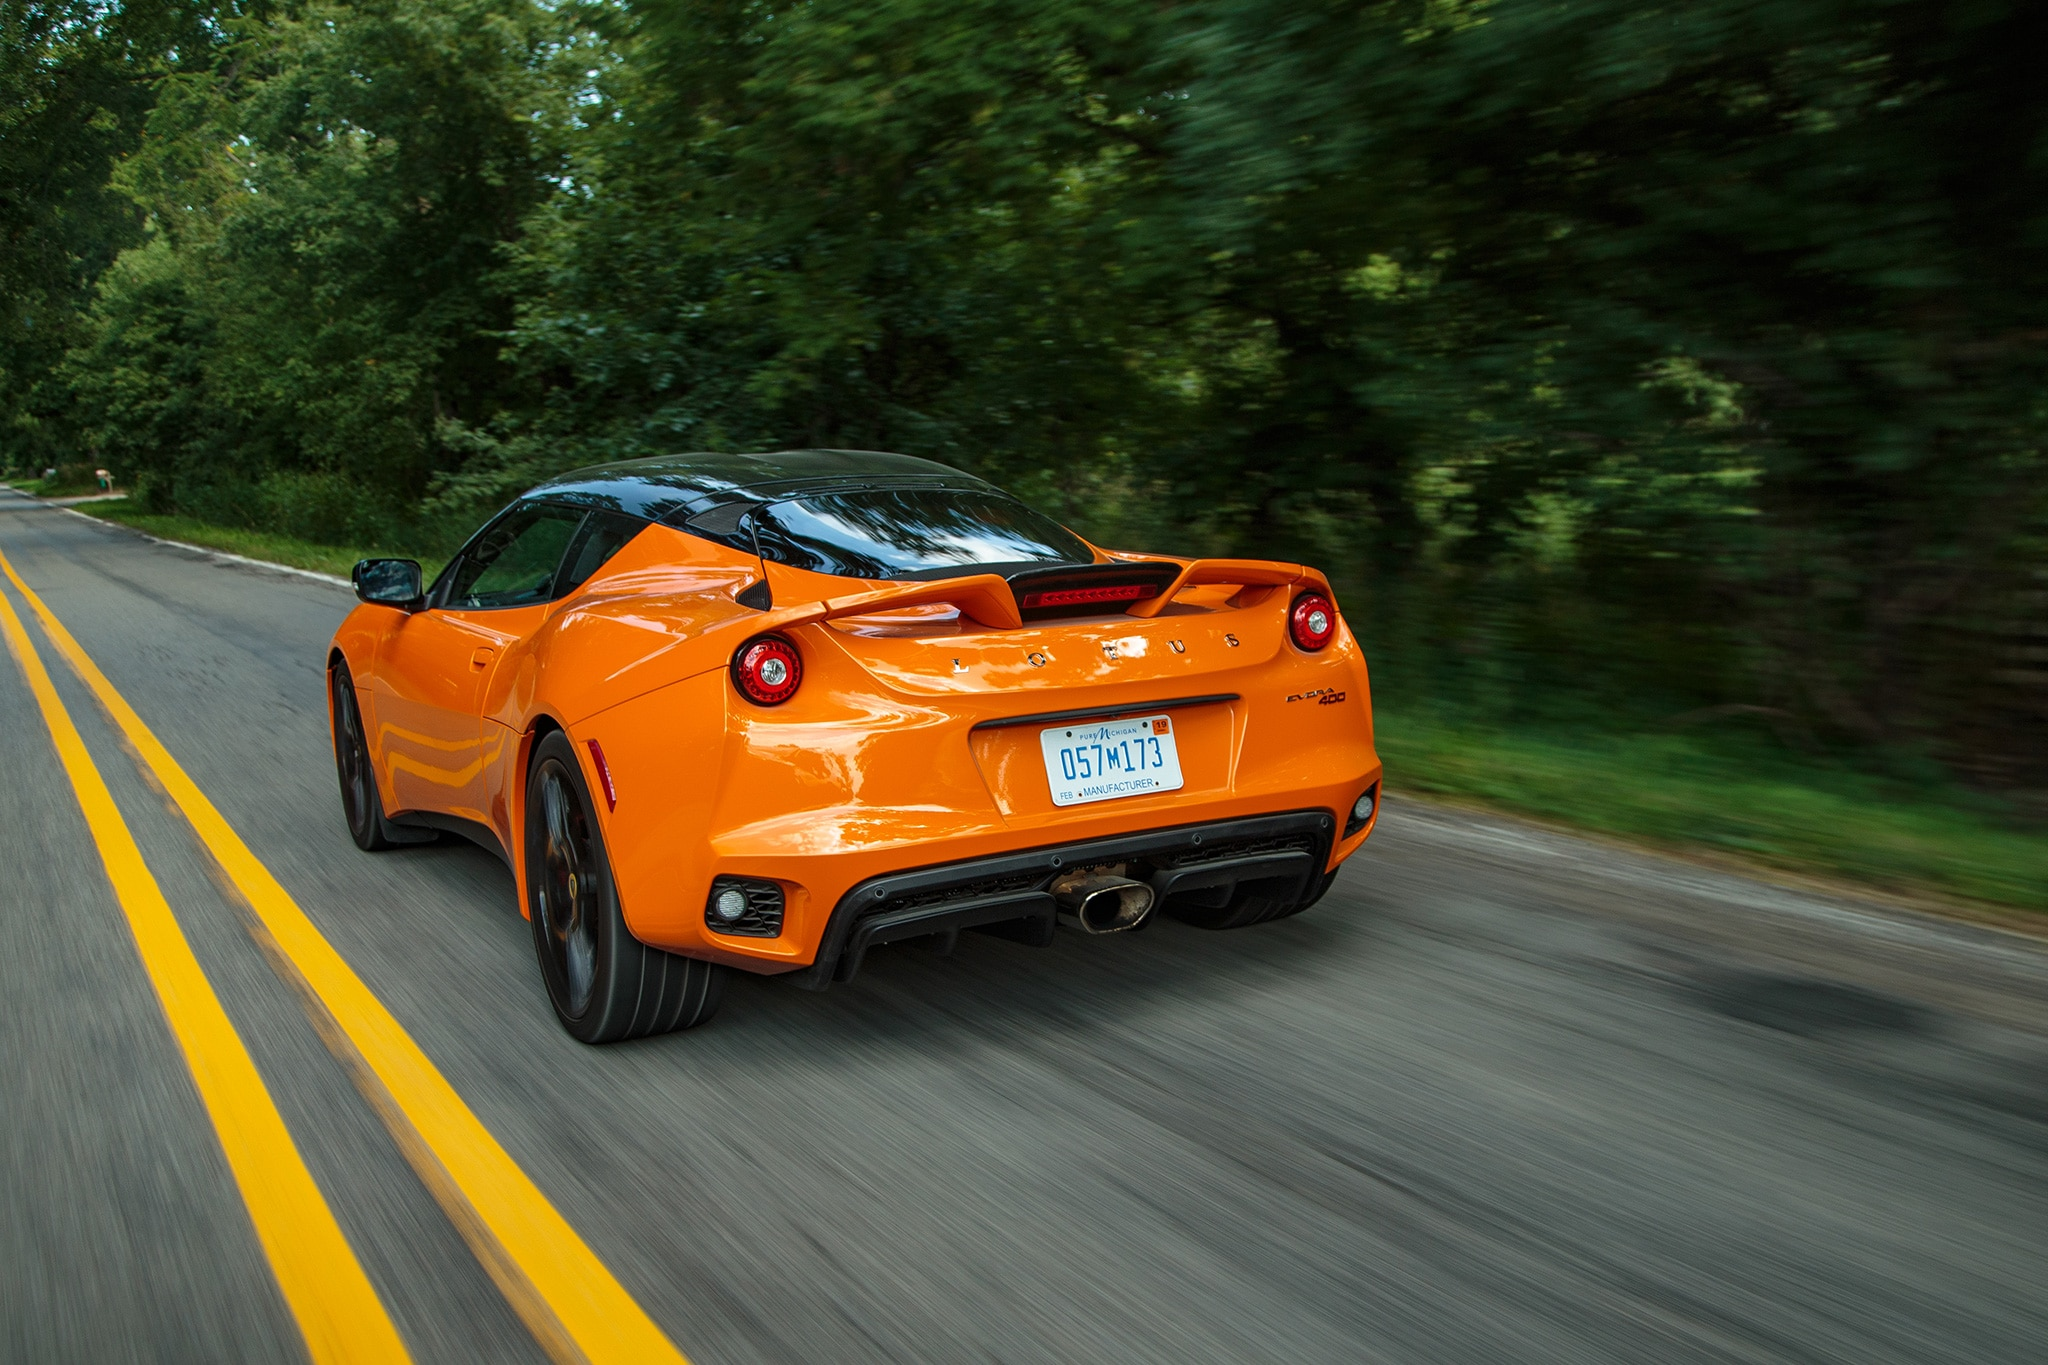 2017 Lotus Evora 400 Rear Three Quarter In Motion 06